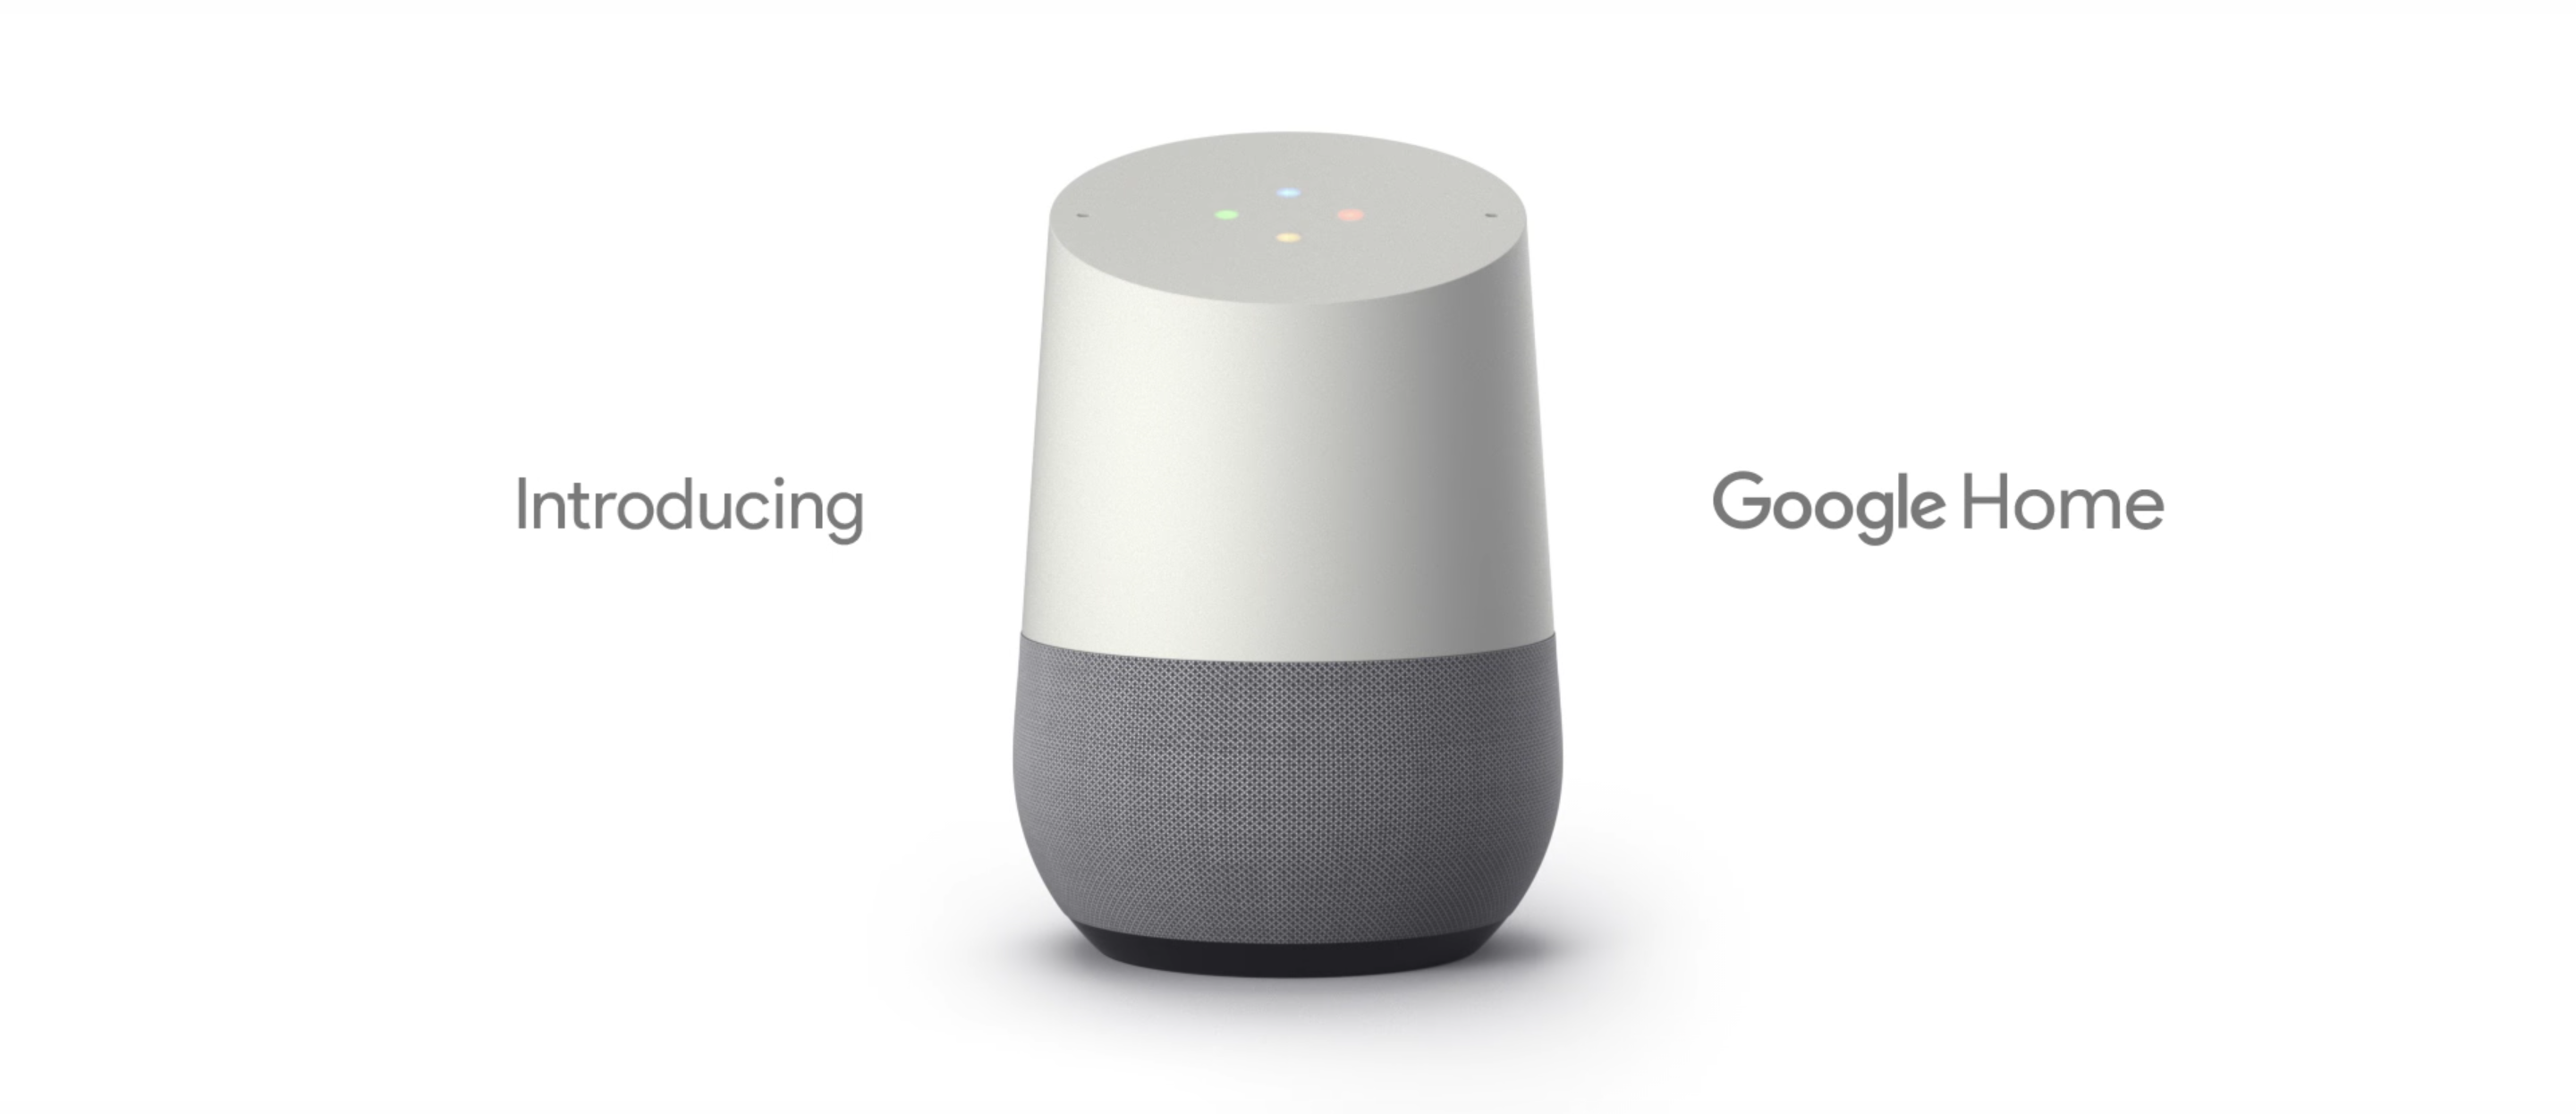 google-home-2017-super-bowl-commercial-youtube-2017-02-03-15-35-30